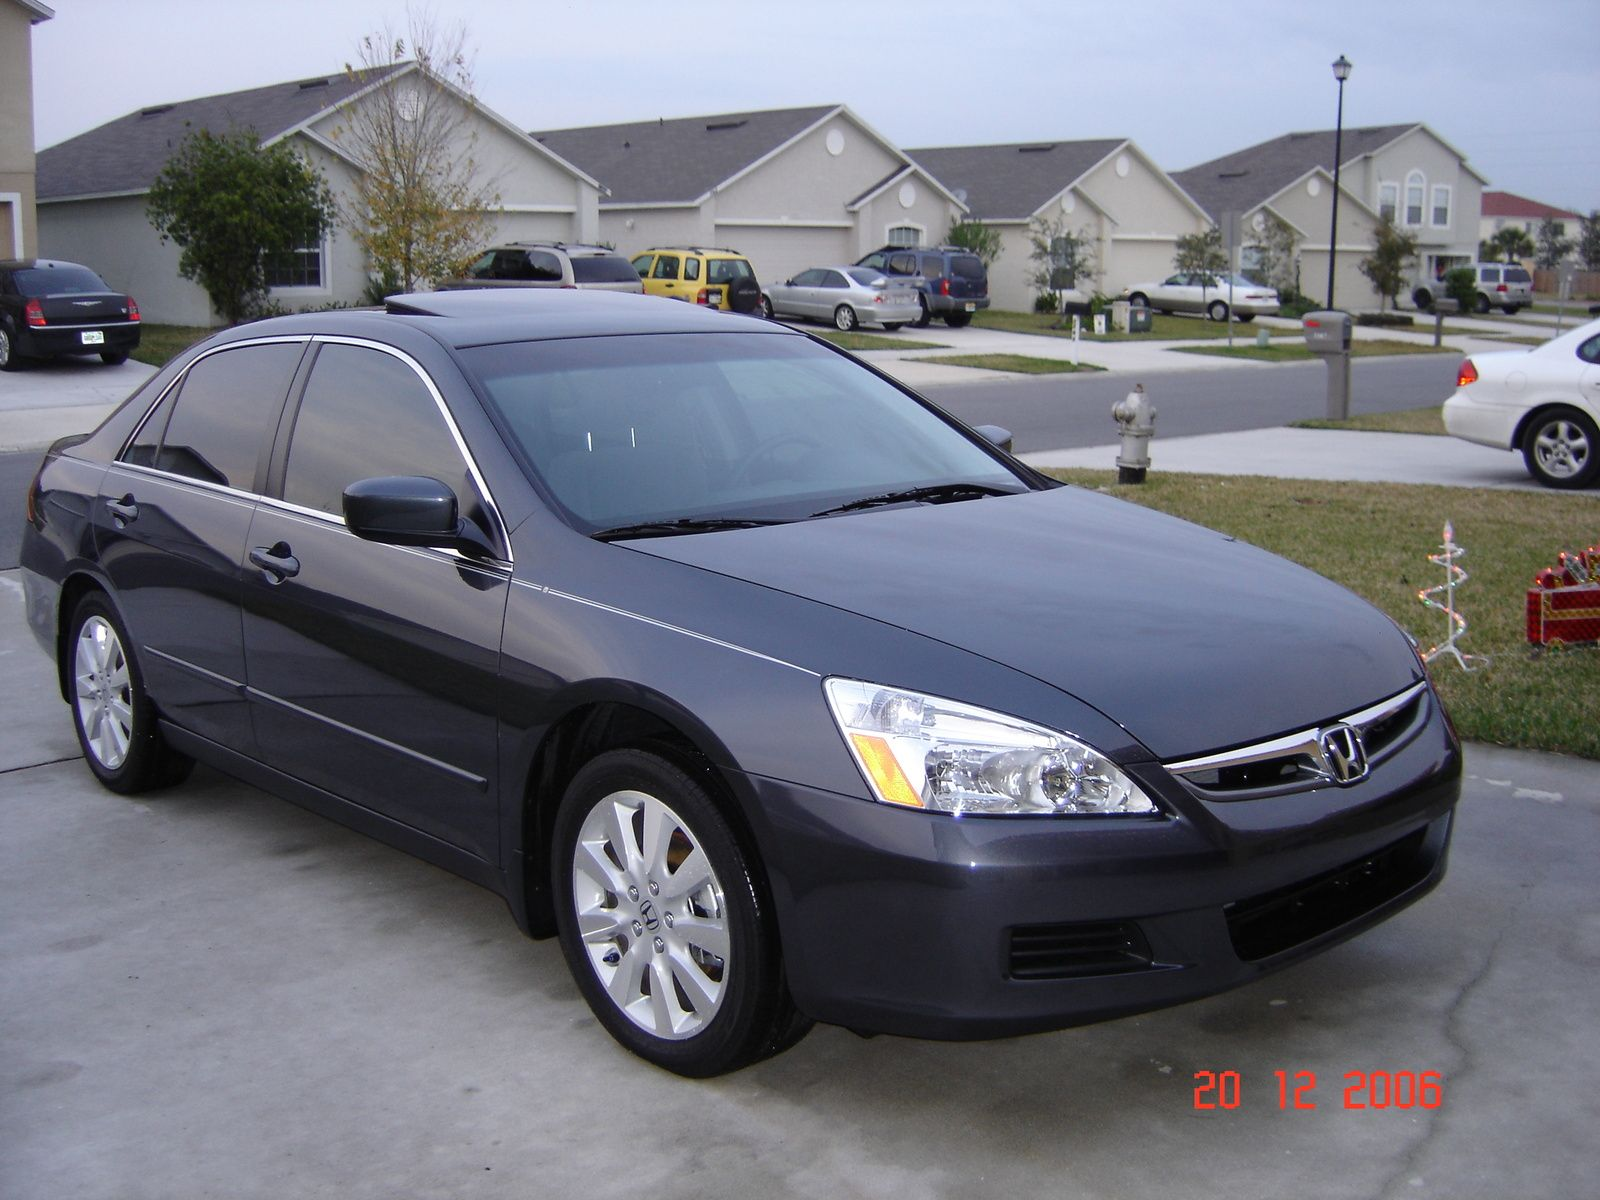 2007 Honda Accord Lx >> 2007 Honda Accord 2007 Honda Accord Lx V6 2007 Honda